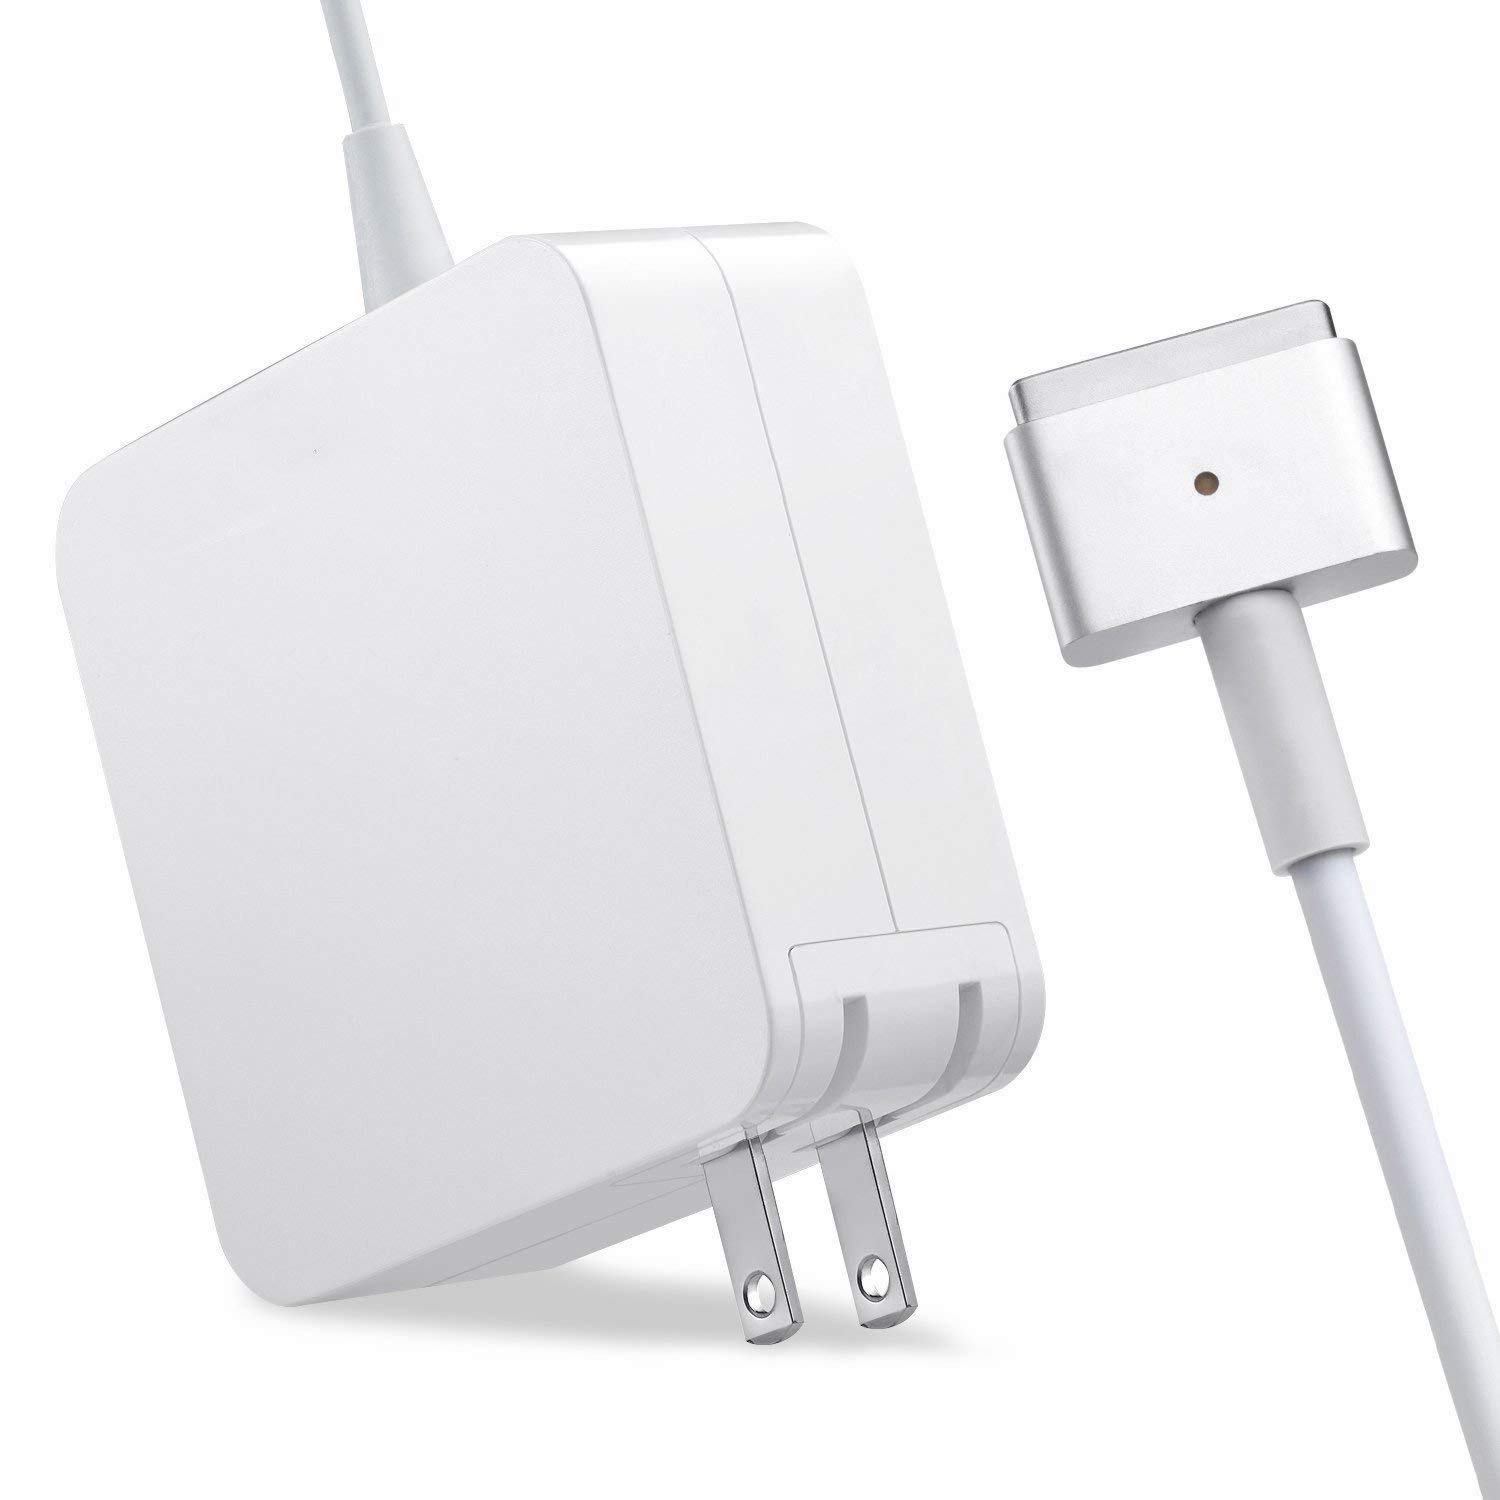 Amazon.com: Mac Book Air Charger, AC 45W Magsafe 2 T-Tip ...